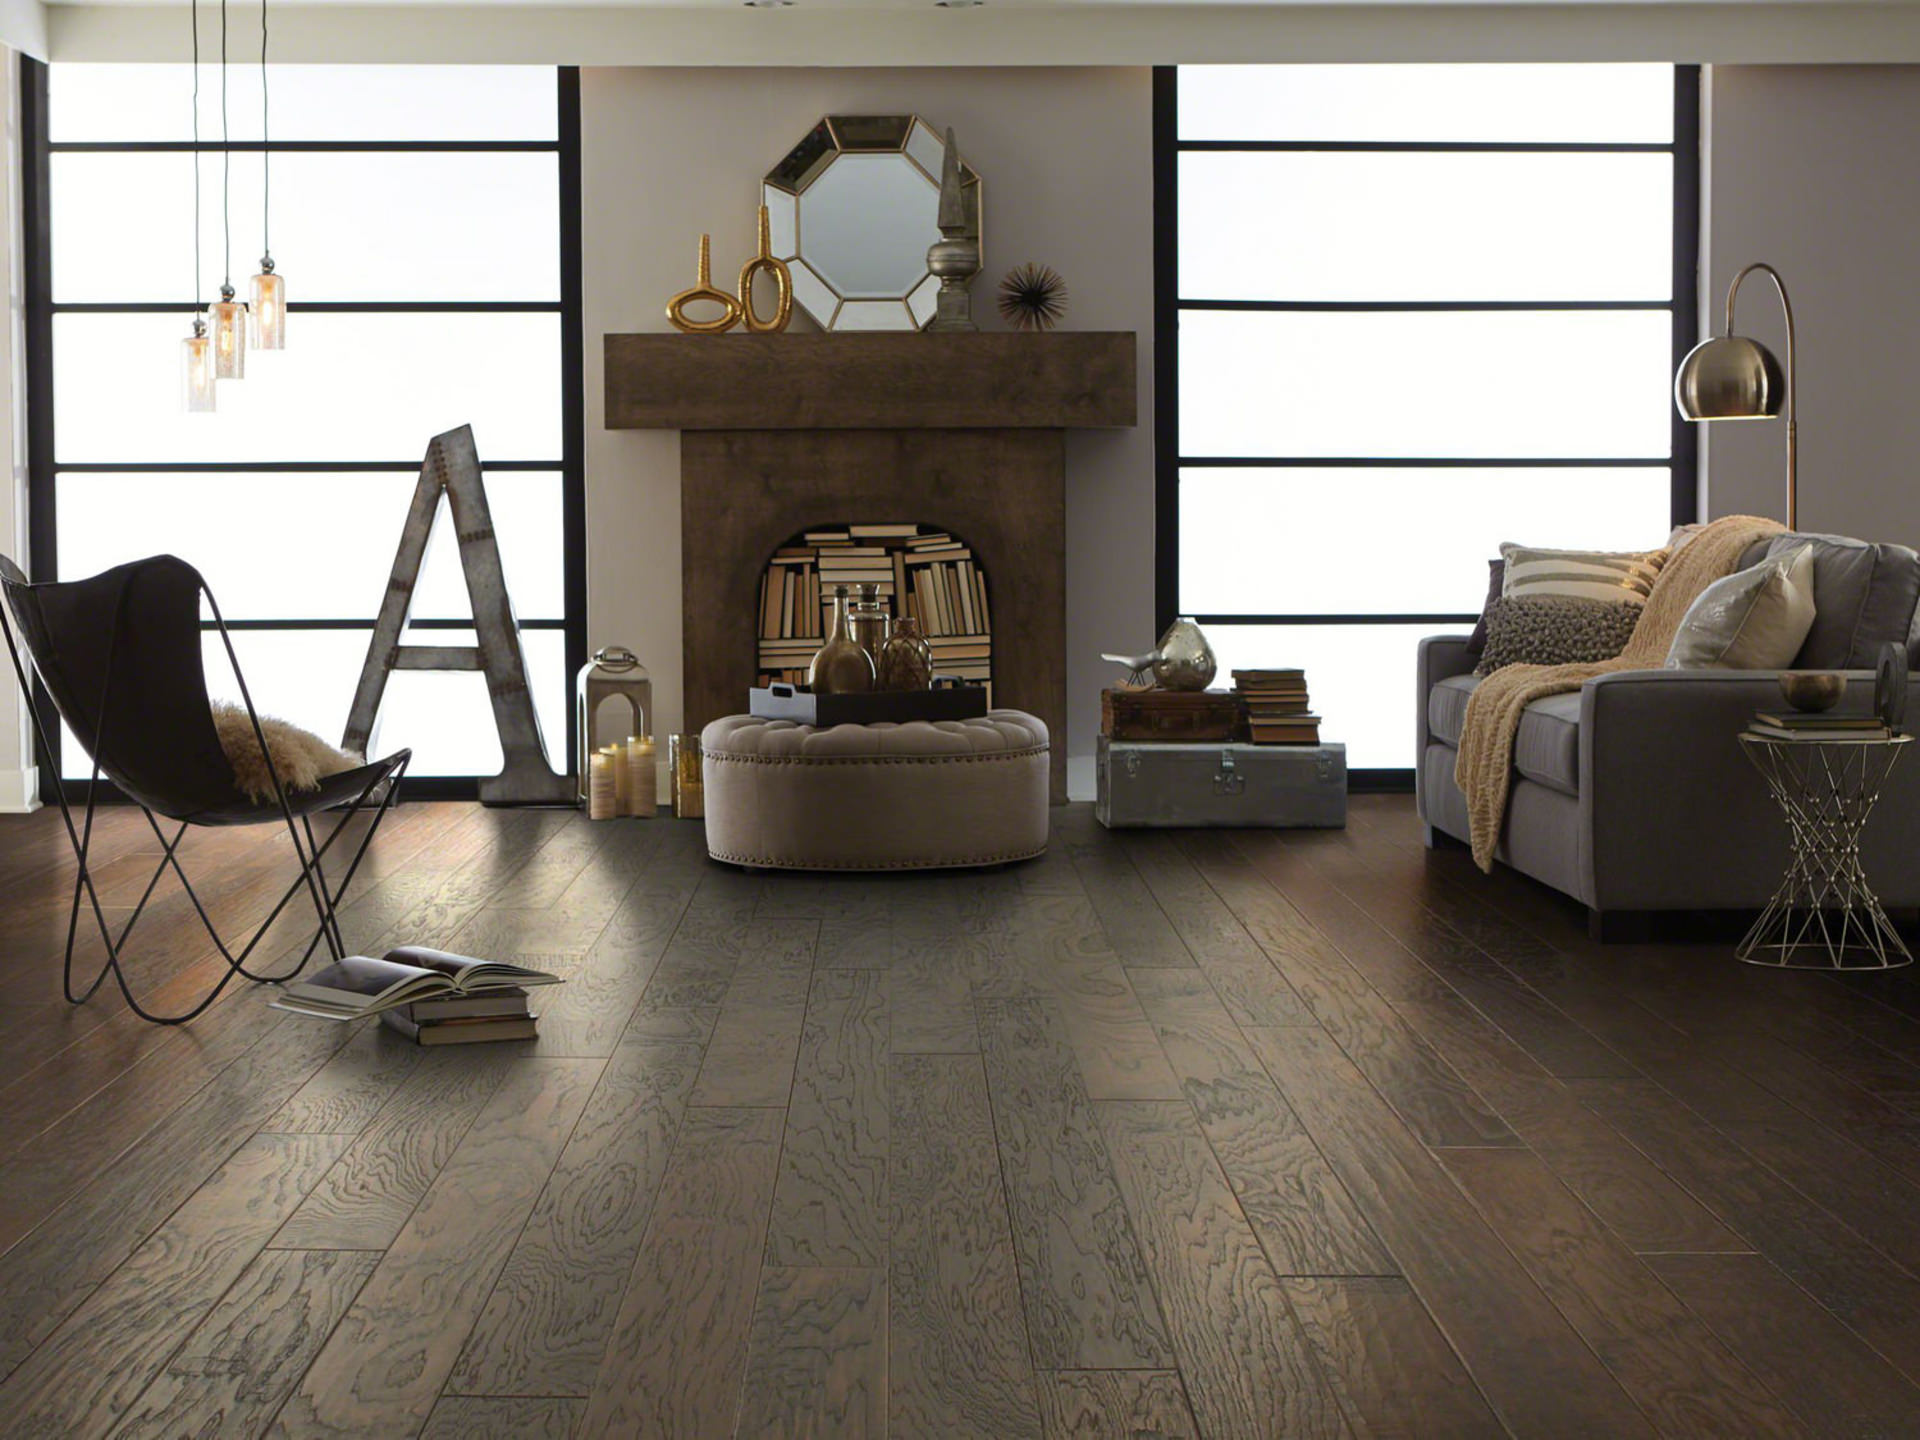 Warm And Inviting Wood Flooring Adds A Touch Of Elegance Easy Maintaility To Any